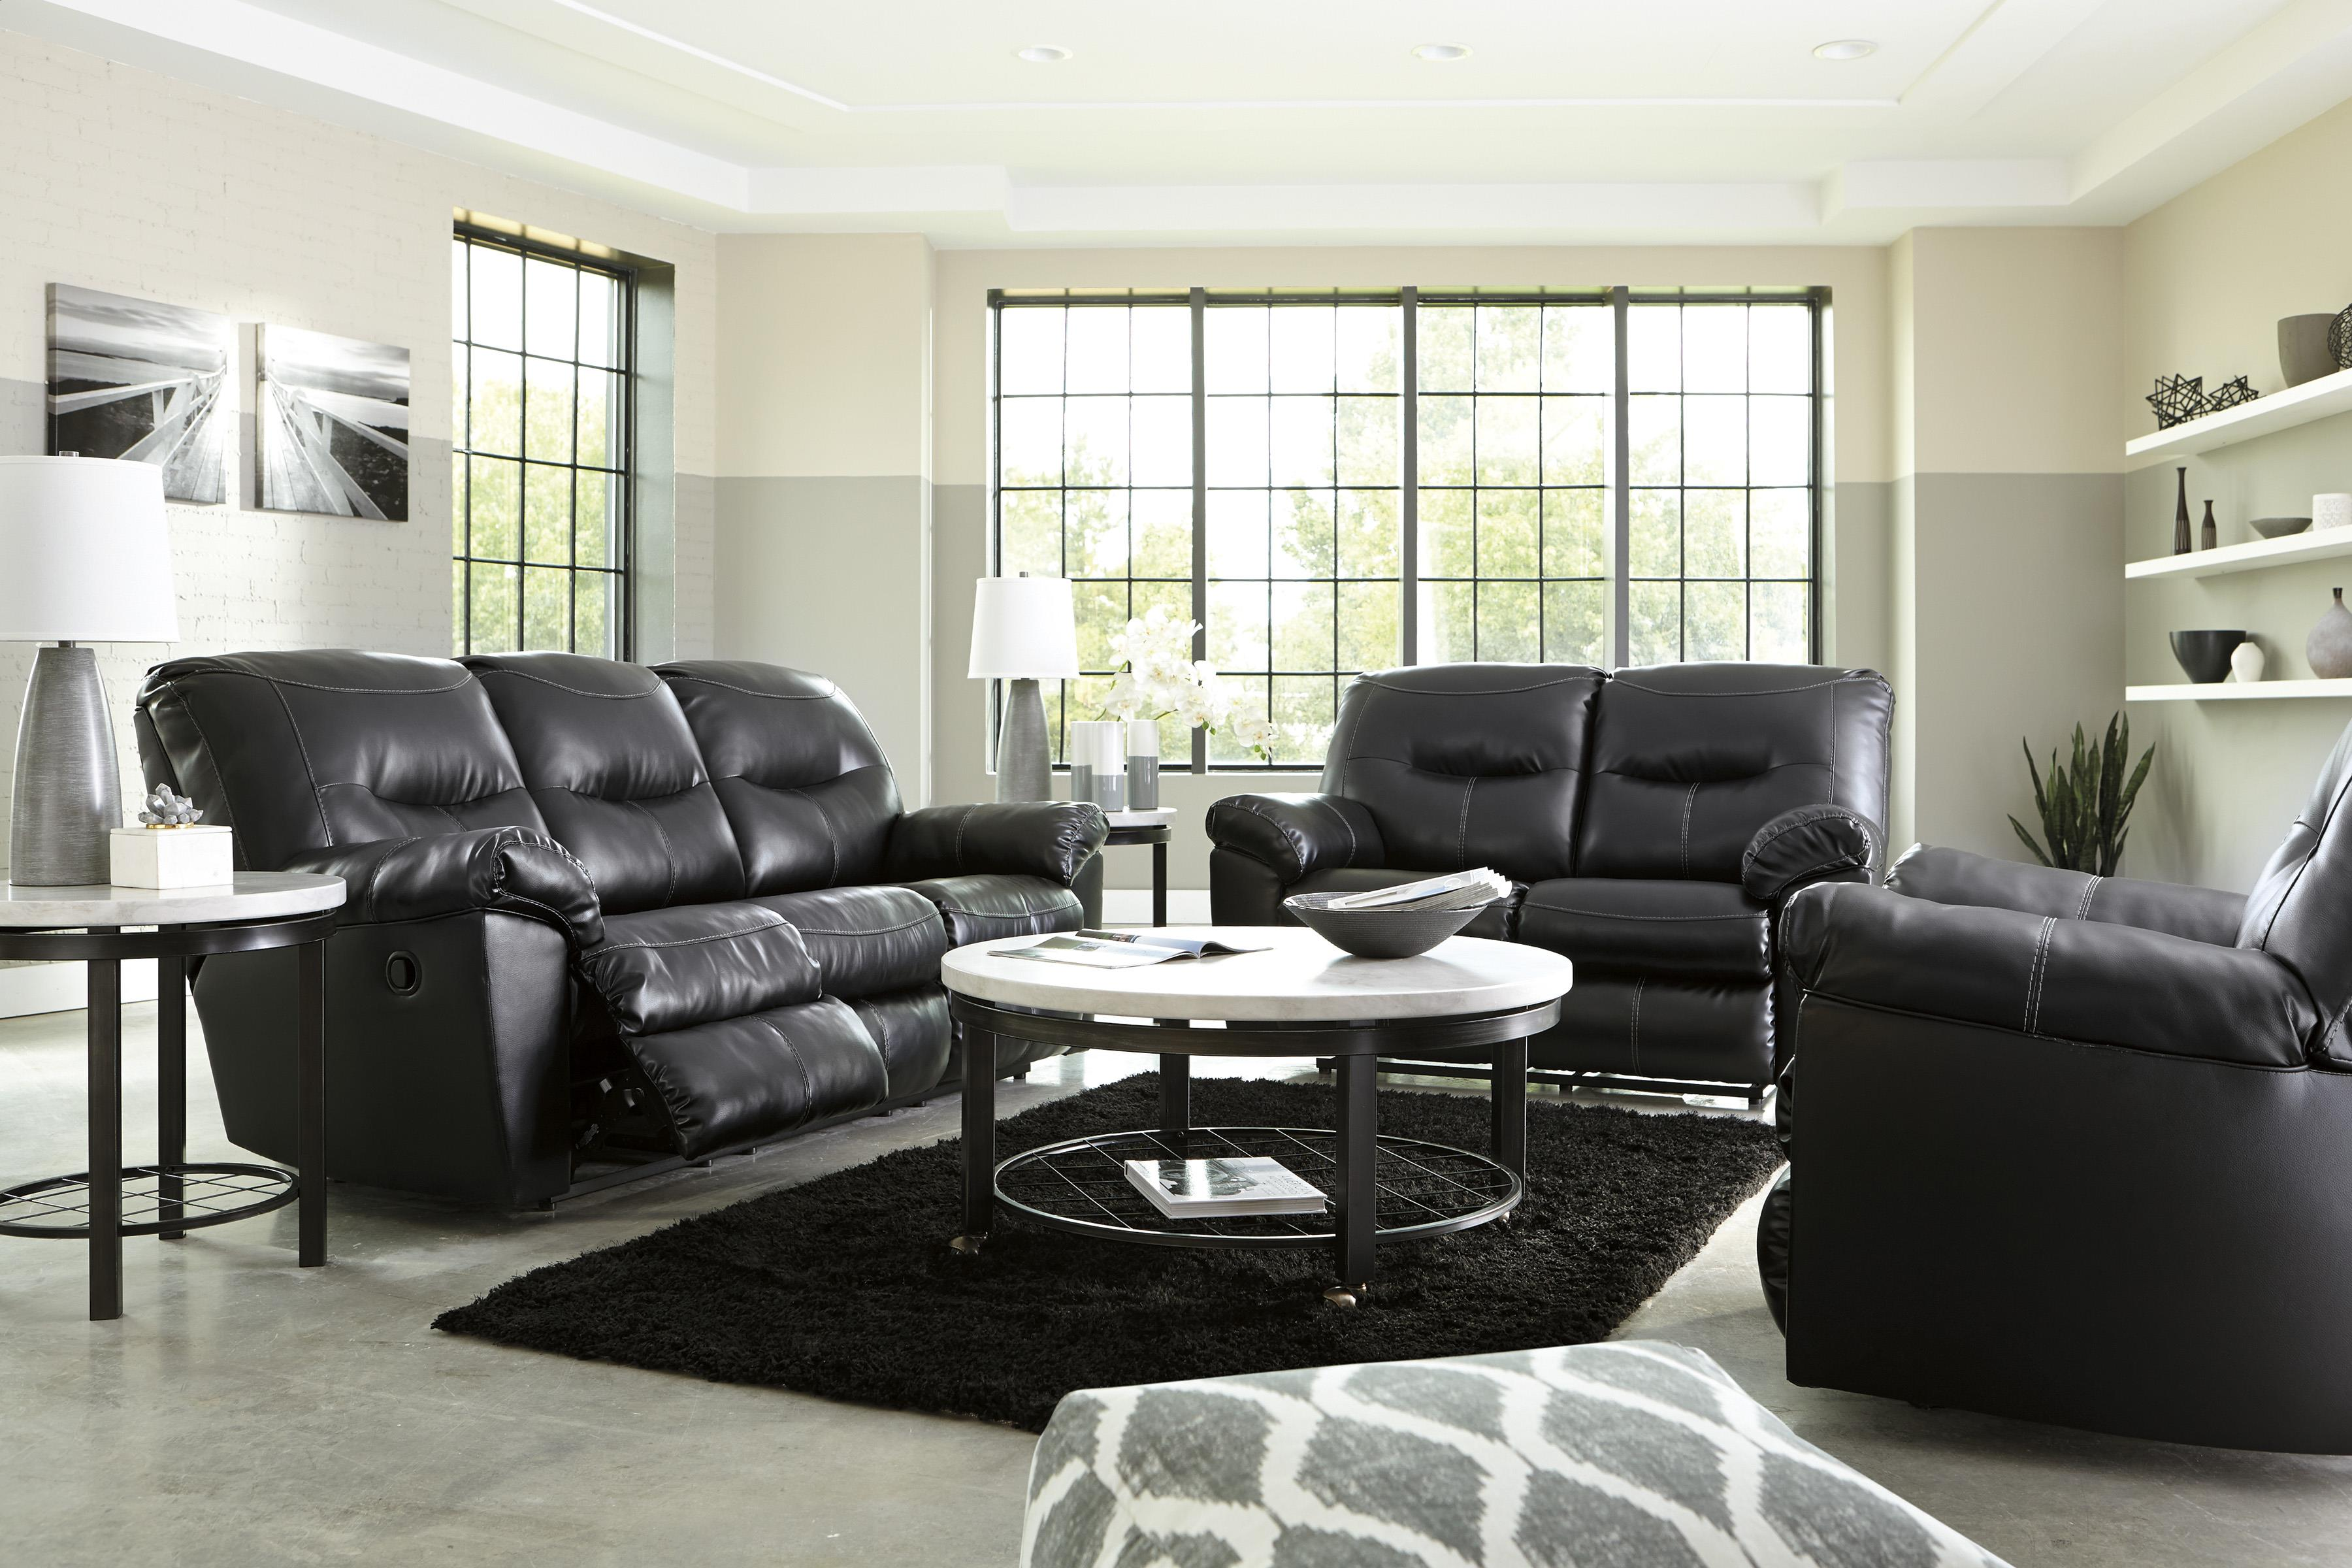 Signature Design by Ashley Kilzer DuraBlend® Reclining Living Room Group - Item Number: 84701 Living Room Group 2